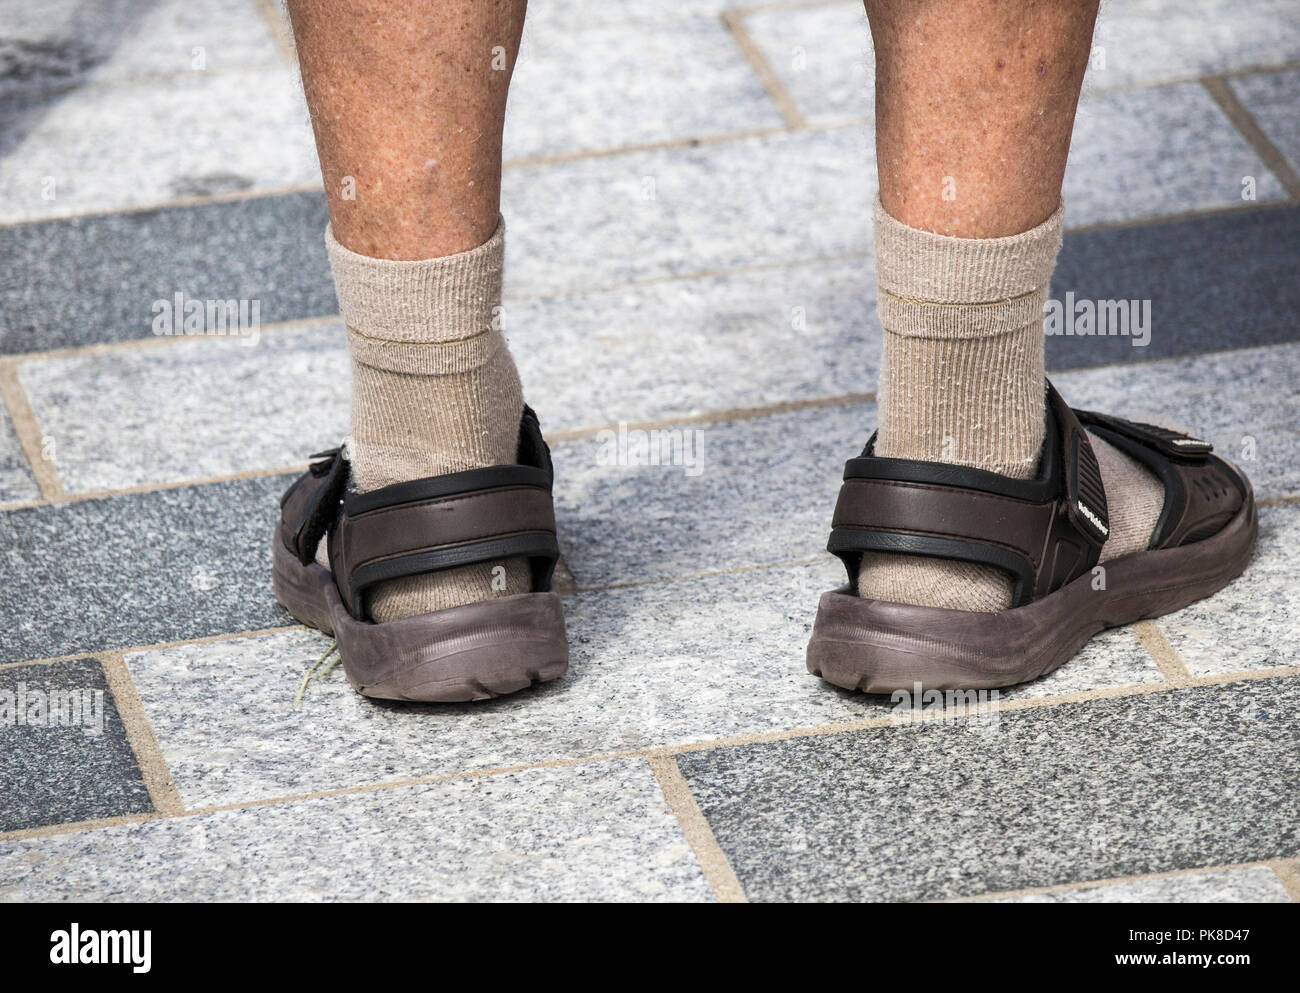 d698a54d7139dd Sandals With Socks Immagini & Sandals With Socks Fotos Stock - Alamy